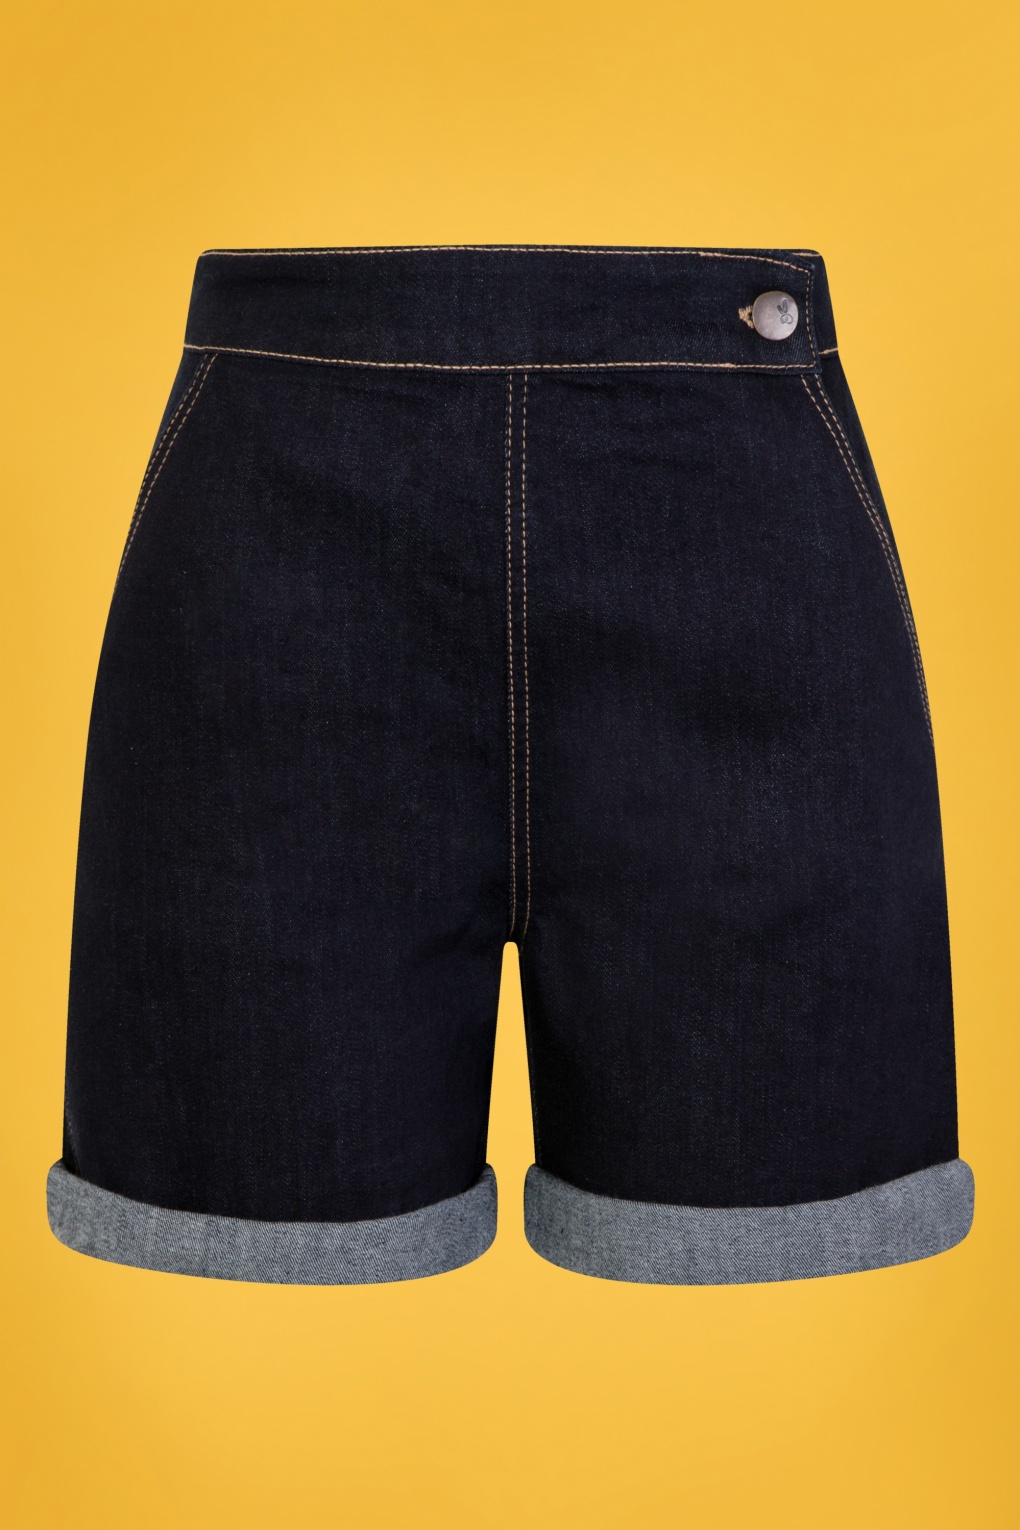 60s Mod Clothing Outfit Ideas 50s Yaz Denim Shorts in Navy £27.41 AT vintagedancer.com